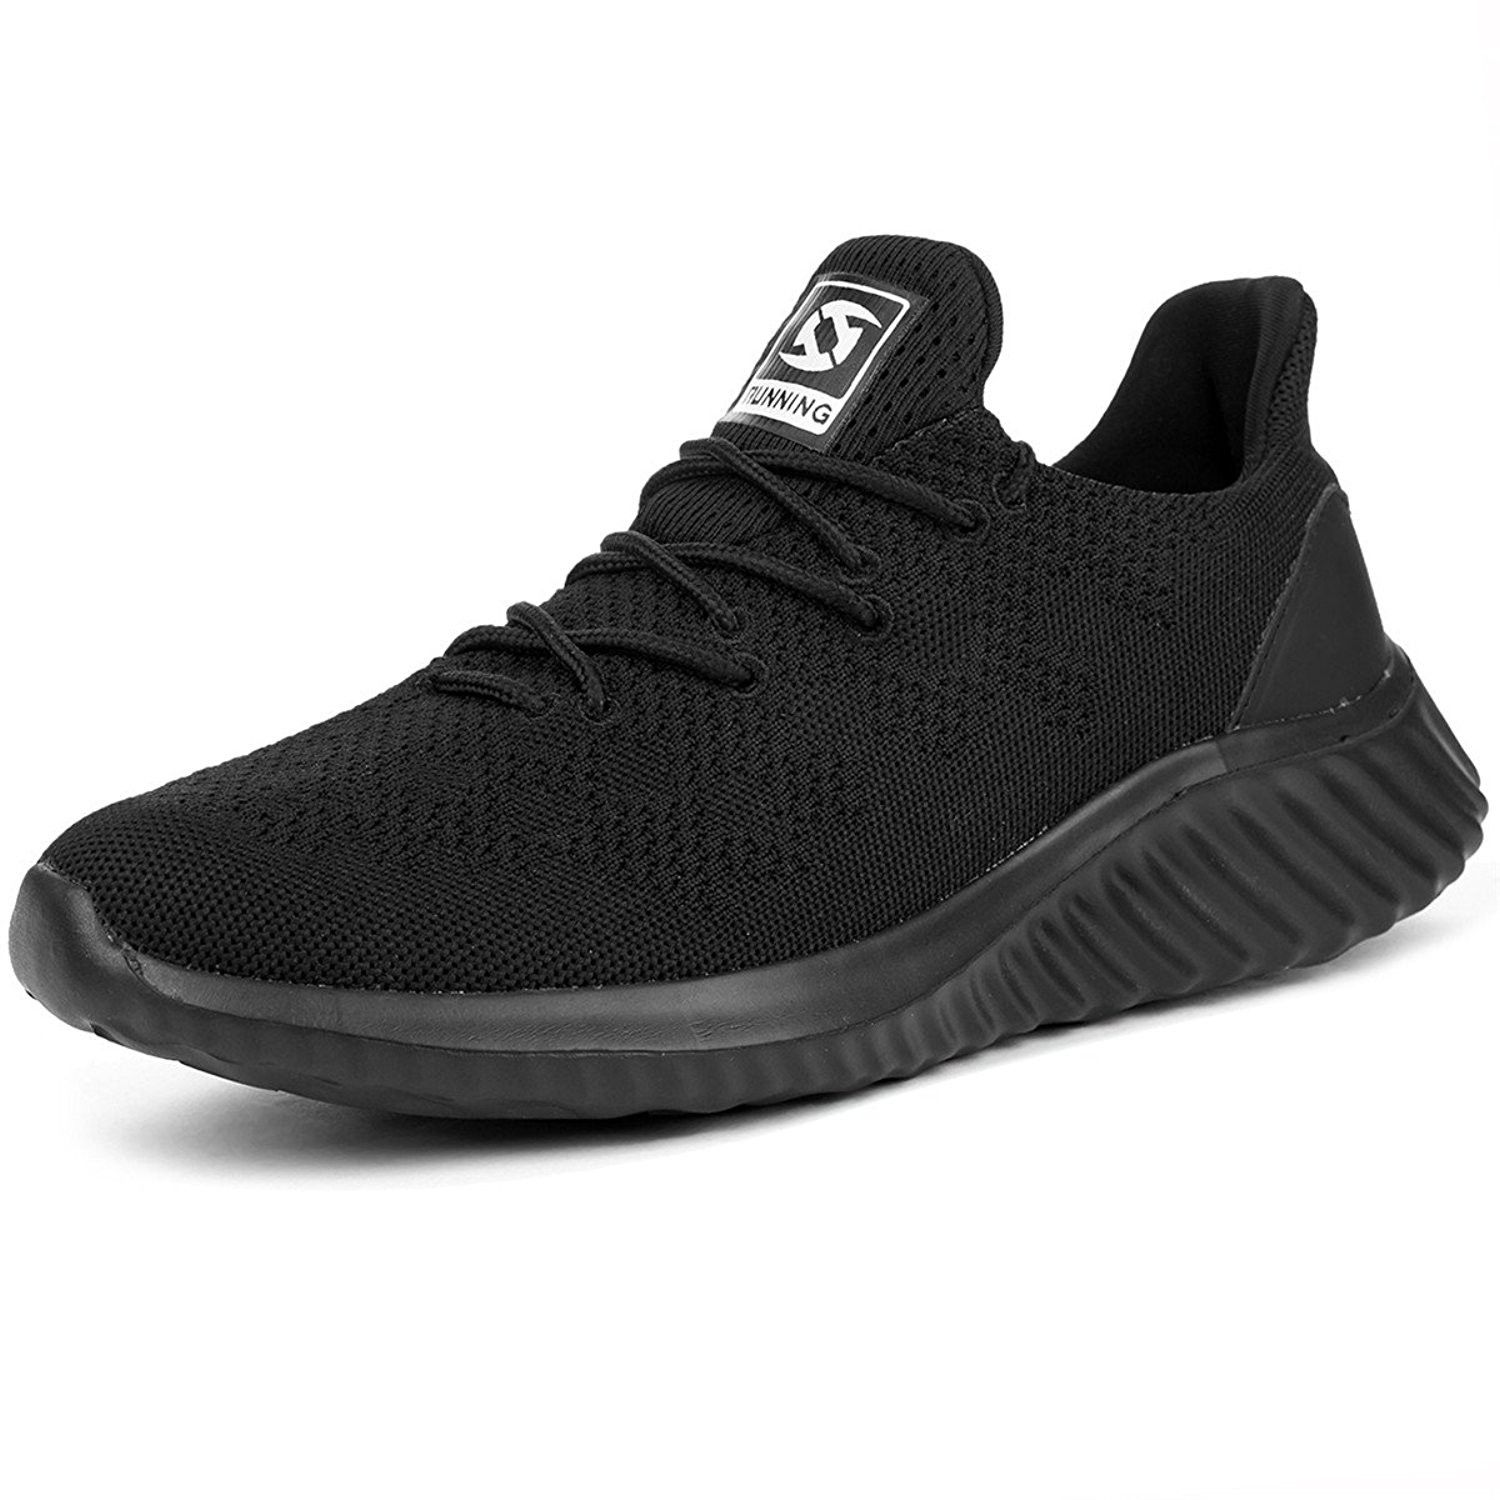 Men's Classic Breathable Casual Sports Sneakers Athletic